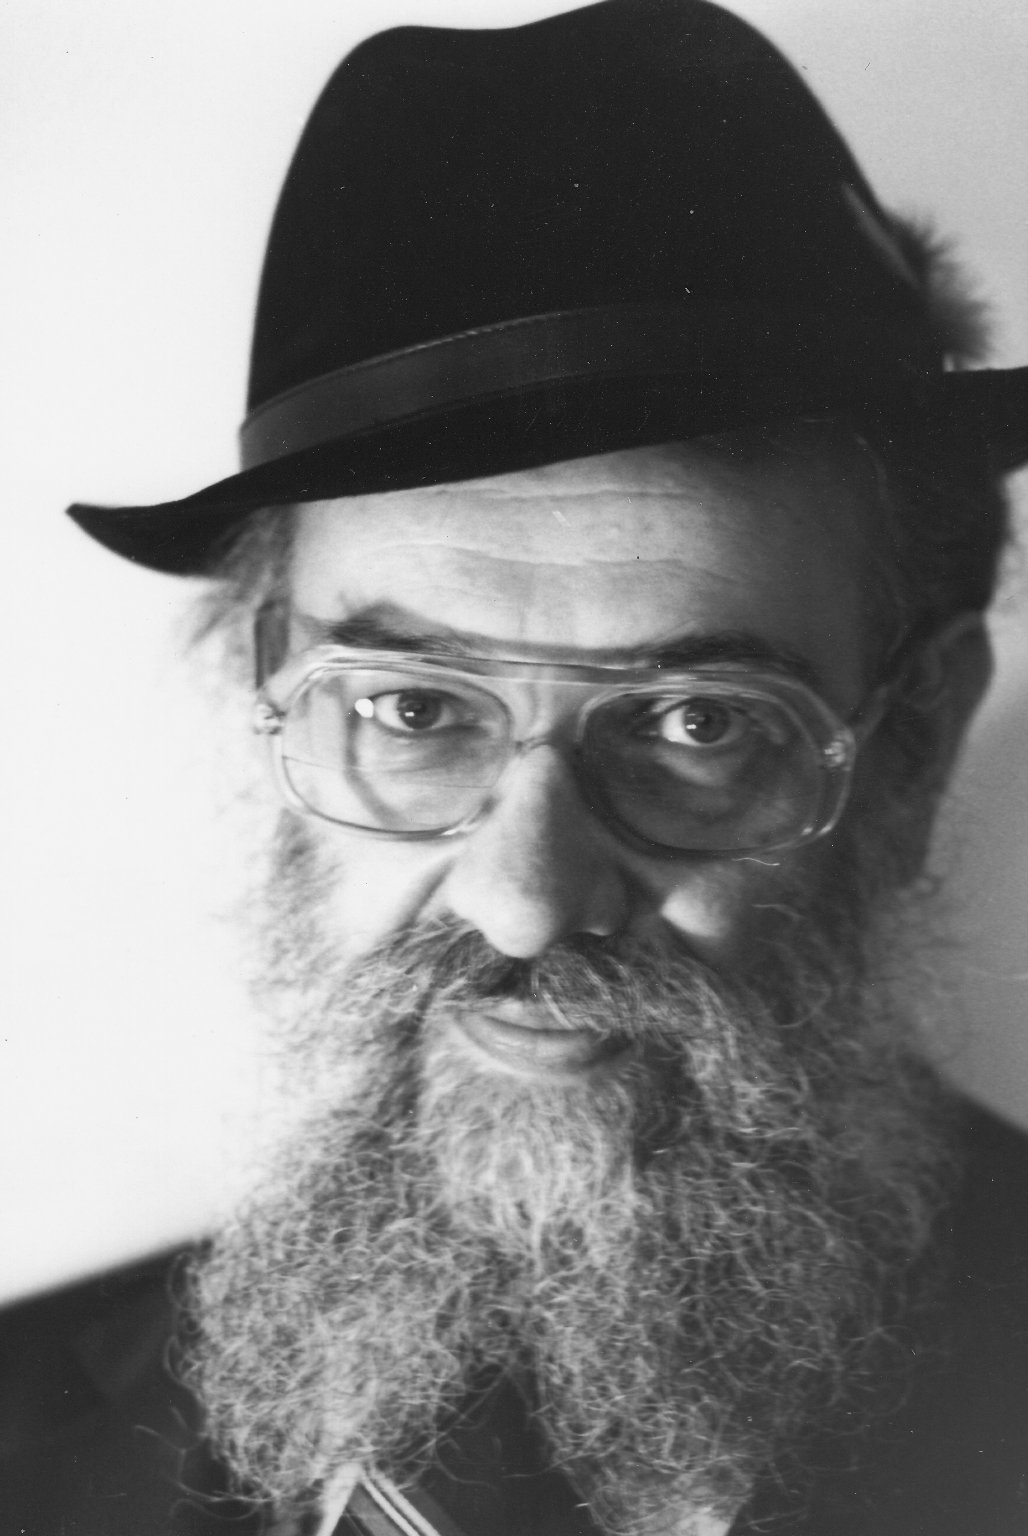 Rabbi Zalman Schachter in a fedora with a feather, ca. 1970s.